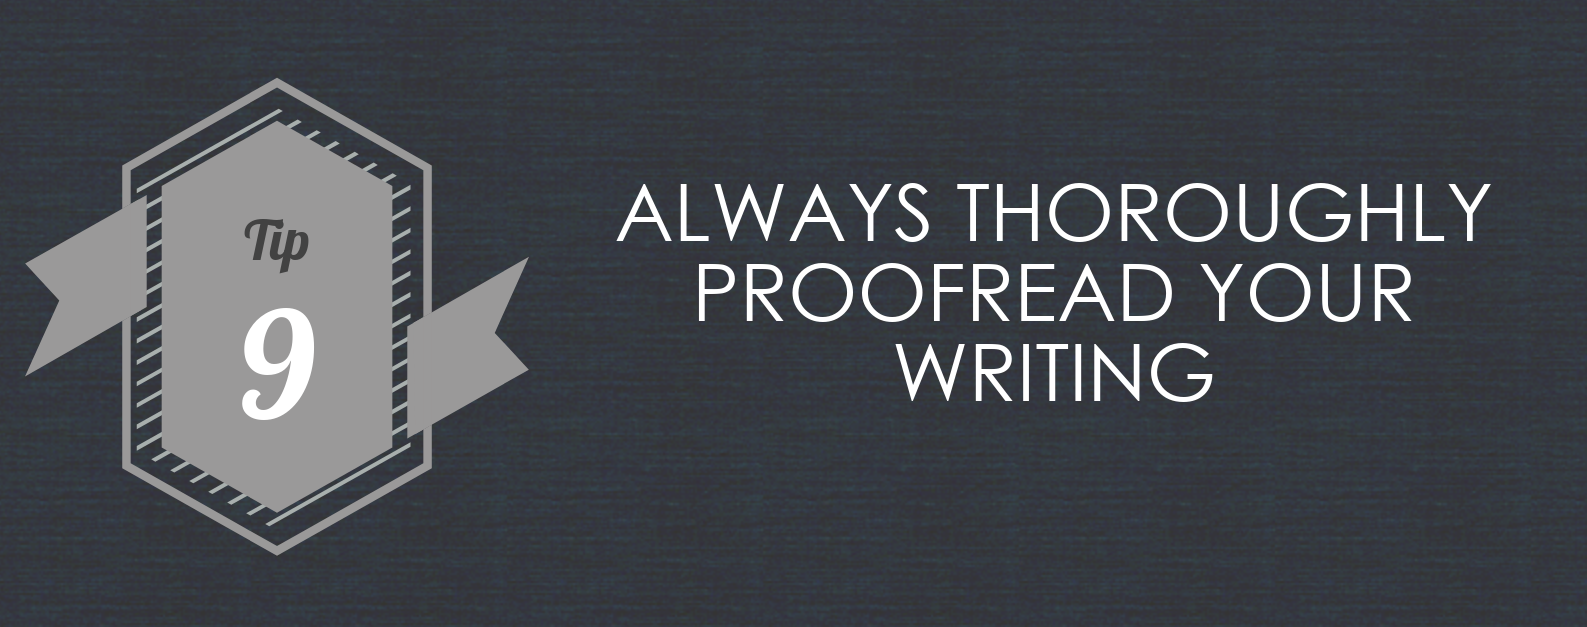 article writing tips 9